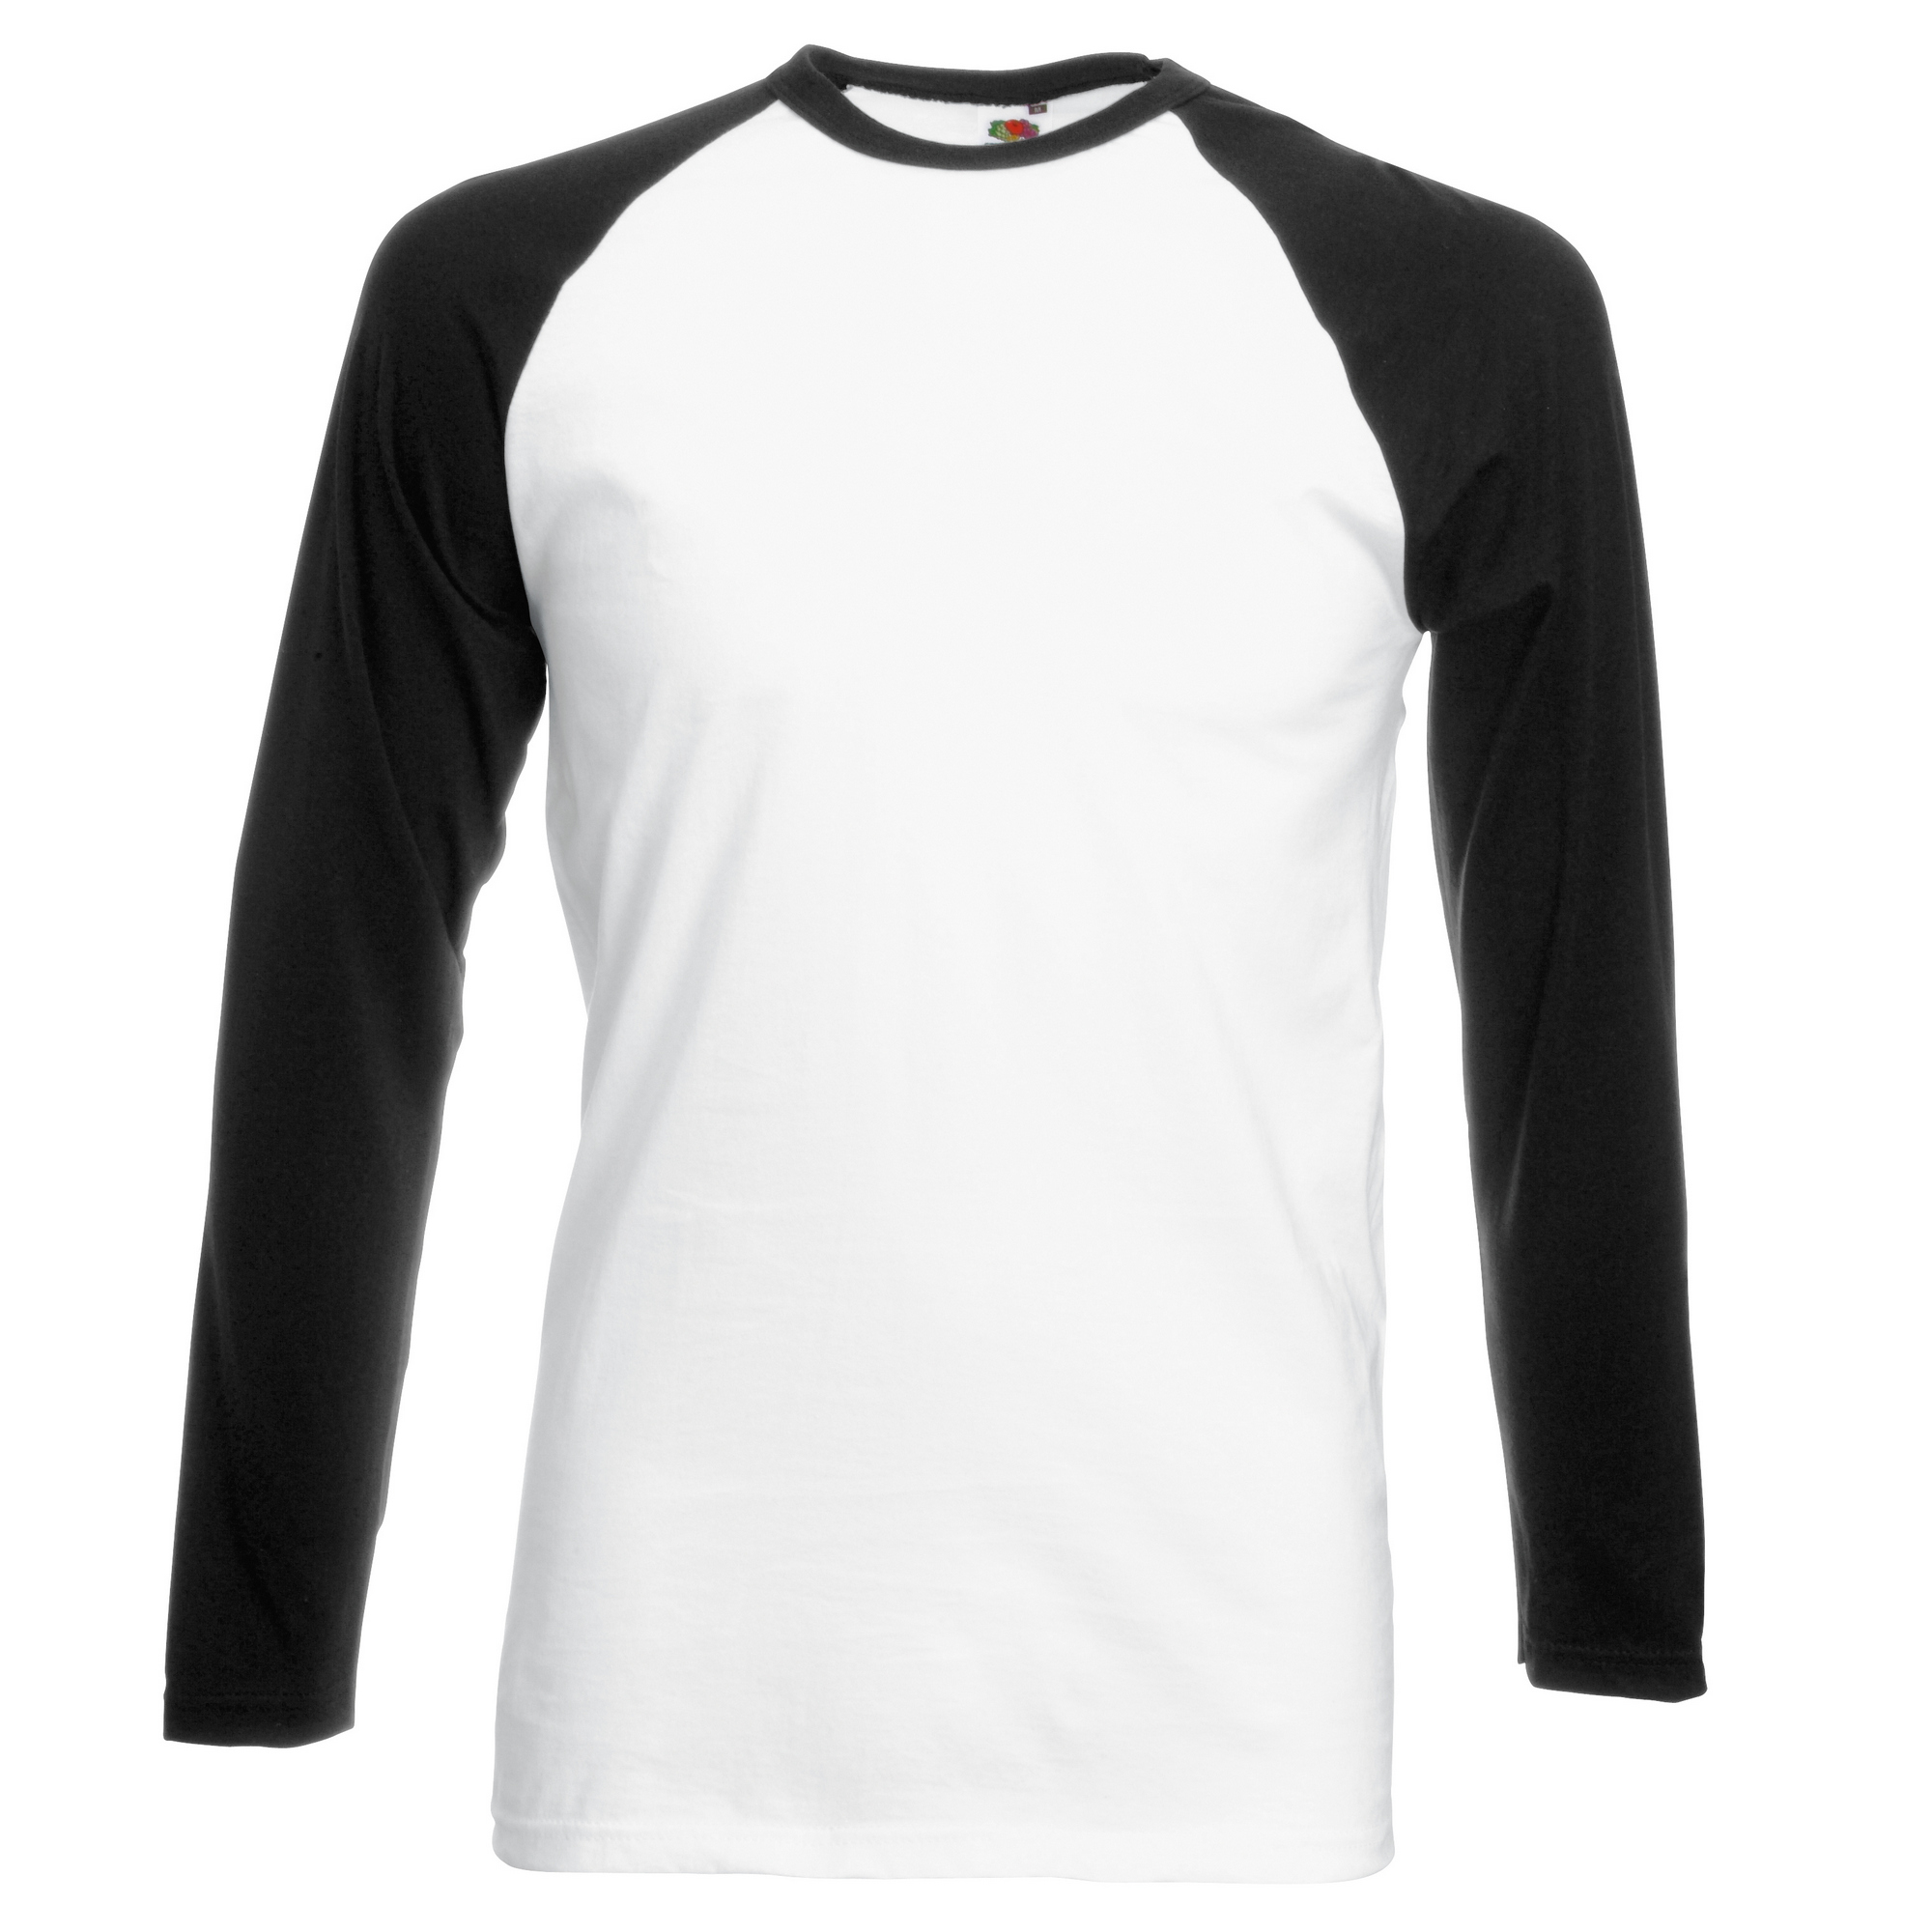 Fruit of the loom mens long sleeve baseball t shirt ebay for What is a long sleeve t shirt